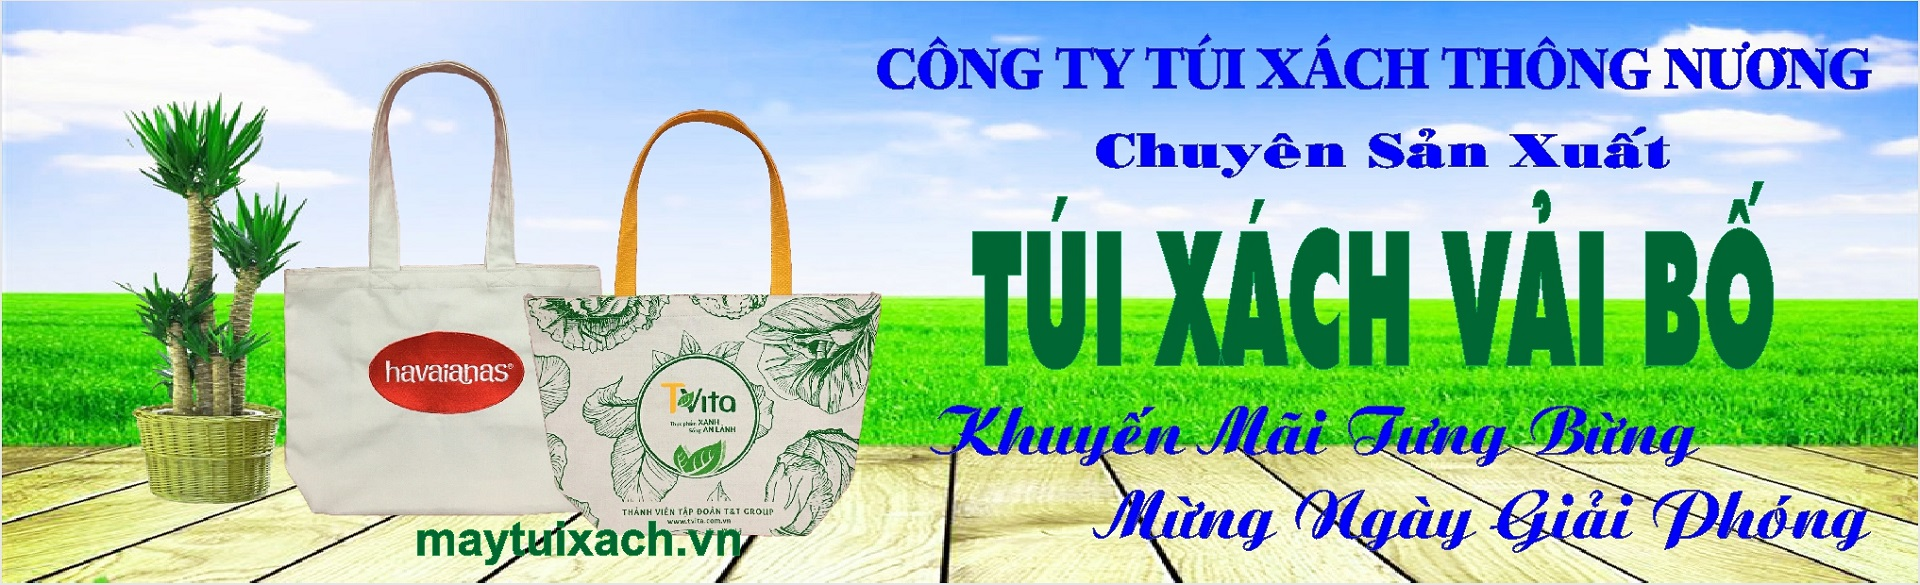 may-tui-xach-vai-bo